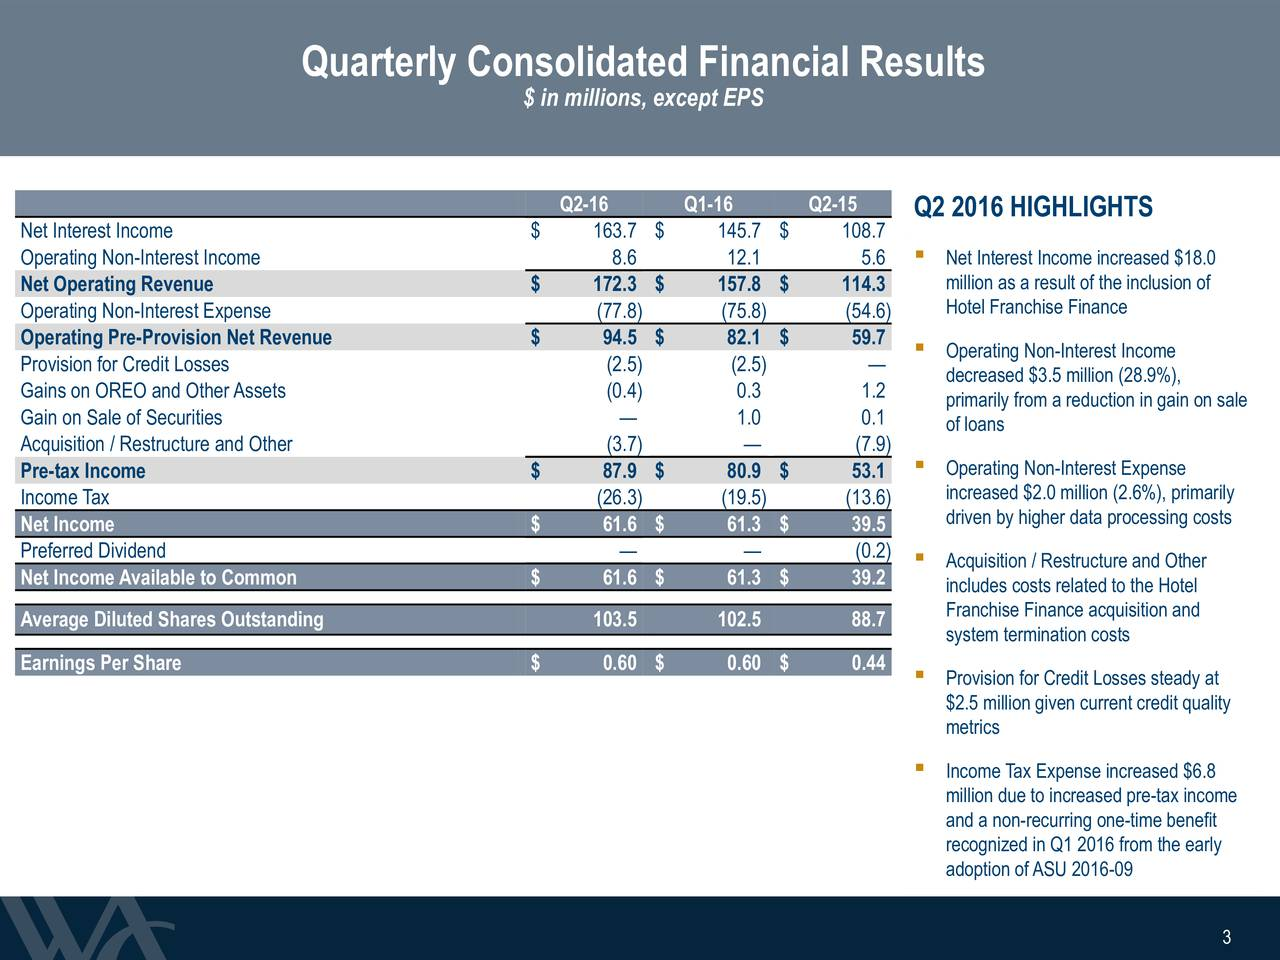 $ in millions, except EPS Q2-16 Q1-16 Q2-15 Q2 2016 HIGHLIGHTS Net Interest Income $ 163.7 $ 145.7 $ 108.7 Operating Non-Interest Income 8.6 12.1 5.6  Net Interest Income increased $18.0 Net Operating Revenue $ 172.3 $ 157.8 $ 114.3 million as a result of the inclusion of Hotel Franchise Finance Operating Non-Interest Expense (77.8) (75.8) (54.6) Operating Pre-Provision Net Revenue $ 94.5 $ 82.1 $ 59.7  Operating Non-Interest Income Provision for Credit Losses (2.5) (2.5) Gains on OREO and OtherAssets (0.4) 0.3 1.2 decreased $3.5 million (28.9%), Gain on Sale of Securities  1.0 0.1 primarily from a reduction in gain on sale of loans Acquisition / Restructure and Other (3.7)  (7.9) Pre-tax Income $ 87.9 $ 80.9 $ 53.1  Operating Non-Interest Expense Income Tax (26.3) (19.5) (13.6) increased $2.0 million (2.6%), primarily Net Income $ 61.6 $ 61.3 $ 39.5 driven by higher data processing costs Preferred Dividend   (0.2)  Acquisition / Restructure and Other Net IncomeAvailable to Common $ 61.6 $ 61.3 $ 39.2 includes costs related to the Hotel Franchise Finance acquisition and Average Diluted Shares Outstanding 103.5 102.5 88.7 system termination costs Earnings Per Share $ 0.60 $ 0.60 $ 0.44  Provision for Credit Losses steady at $2.5 million given current credit quality metrics Income Tax Expense increased $6.8 million due to increased pre-tax income and a non-recurring one-time benefit recognized in Q1 2016 from the early adoption ofASU 2016-09 3 3